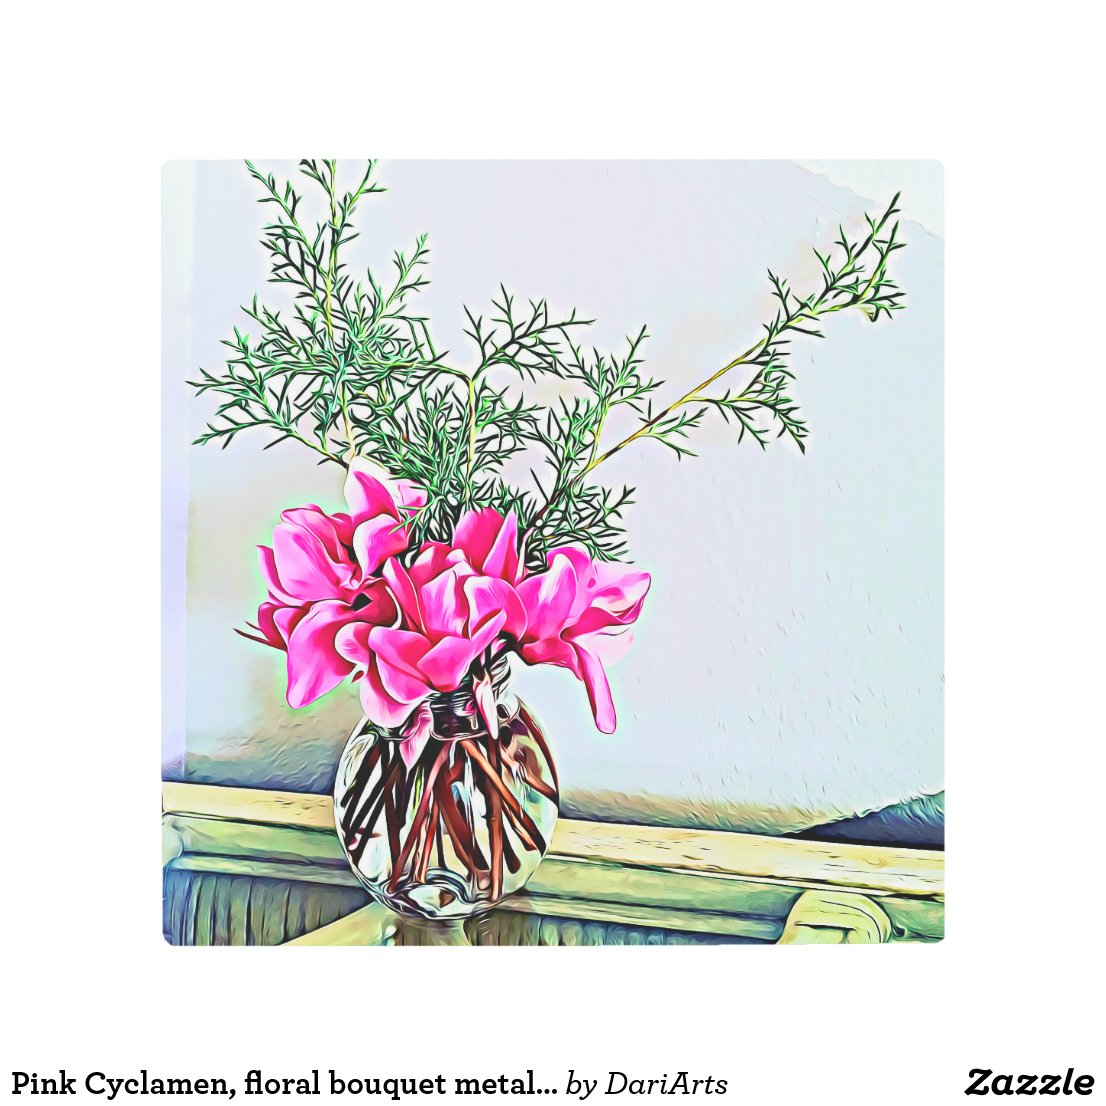 Pink Cyclamen, floral bouquet metal wall art print